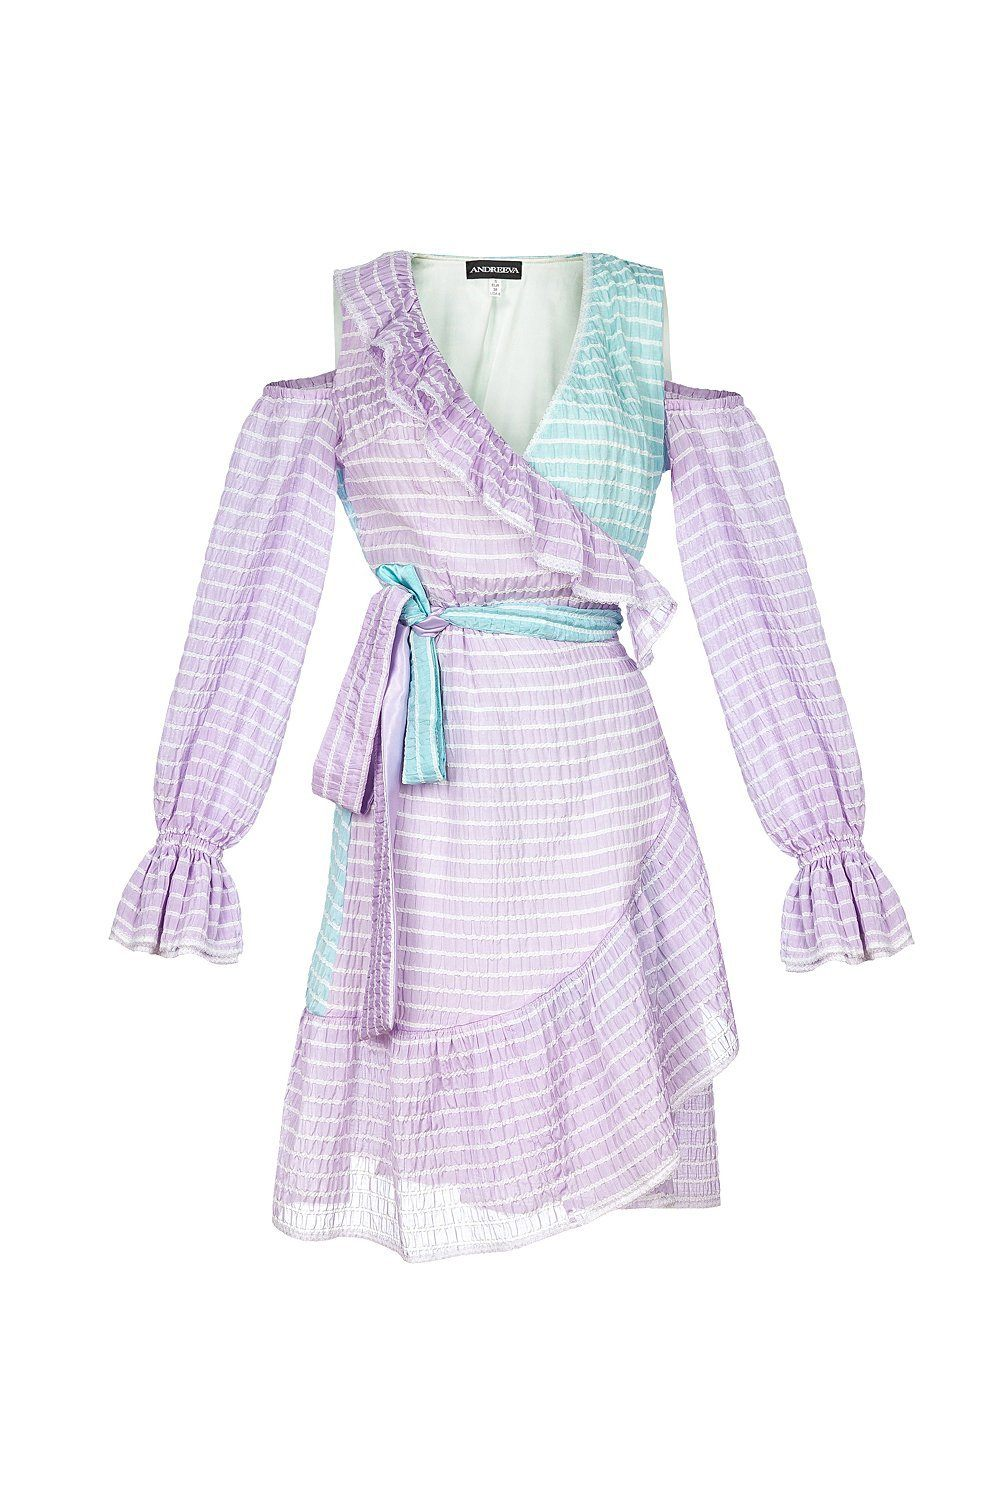 Lavender mint dress - dress